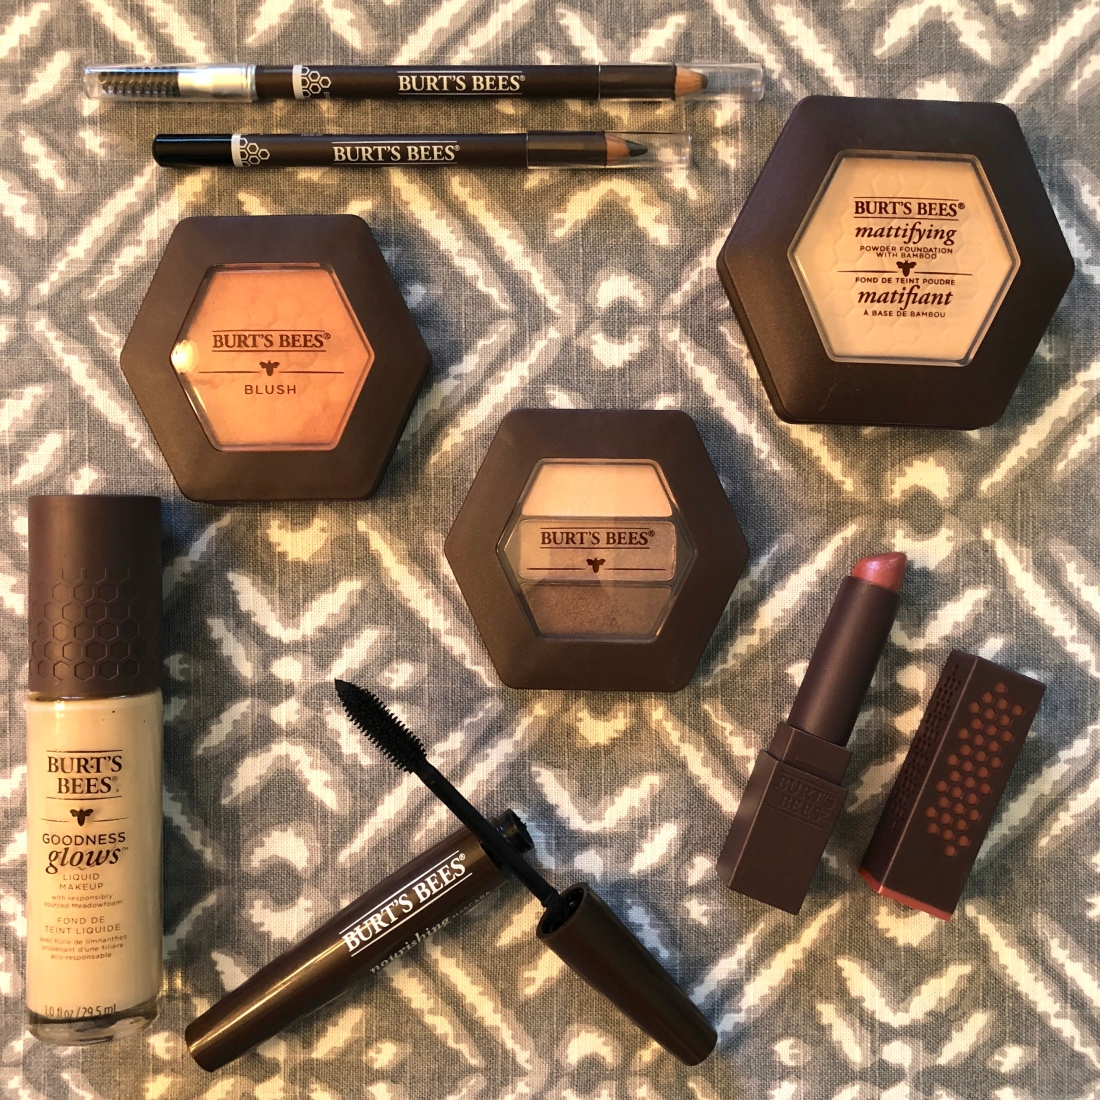 Burt's Bees Makeup products